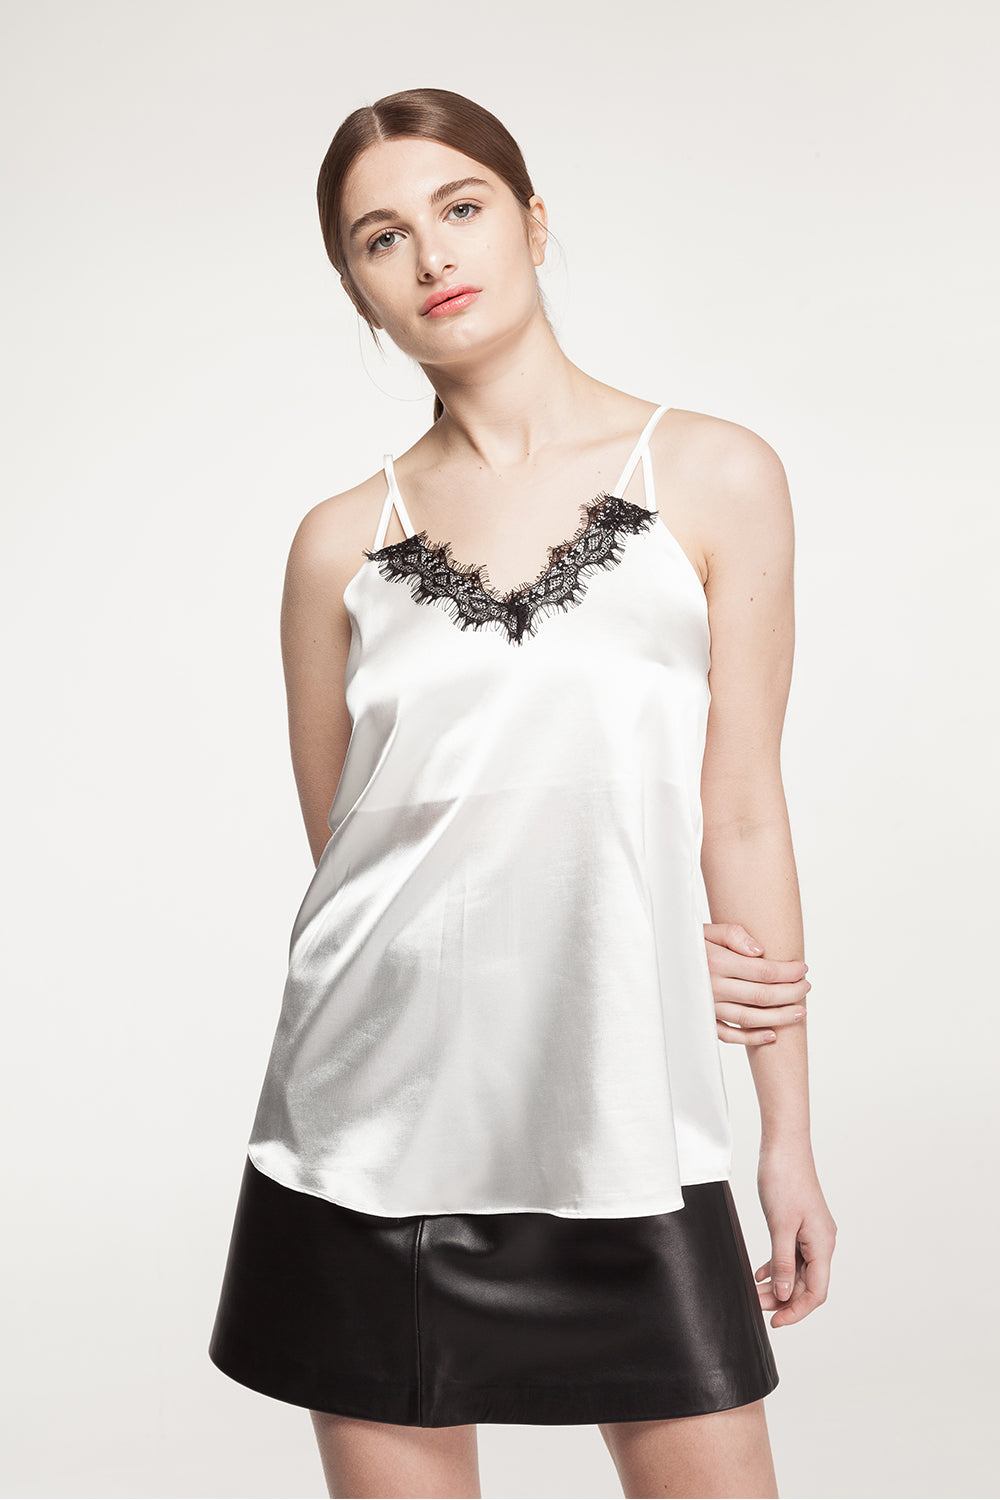 V-Neck Lace Cami Top - 60% Off